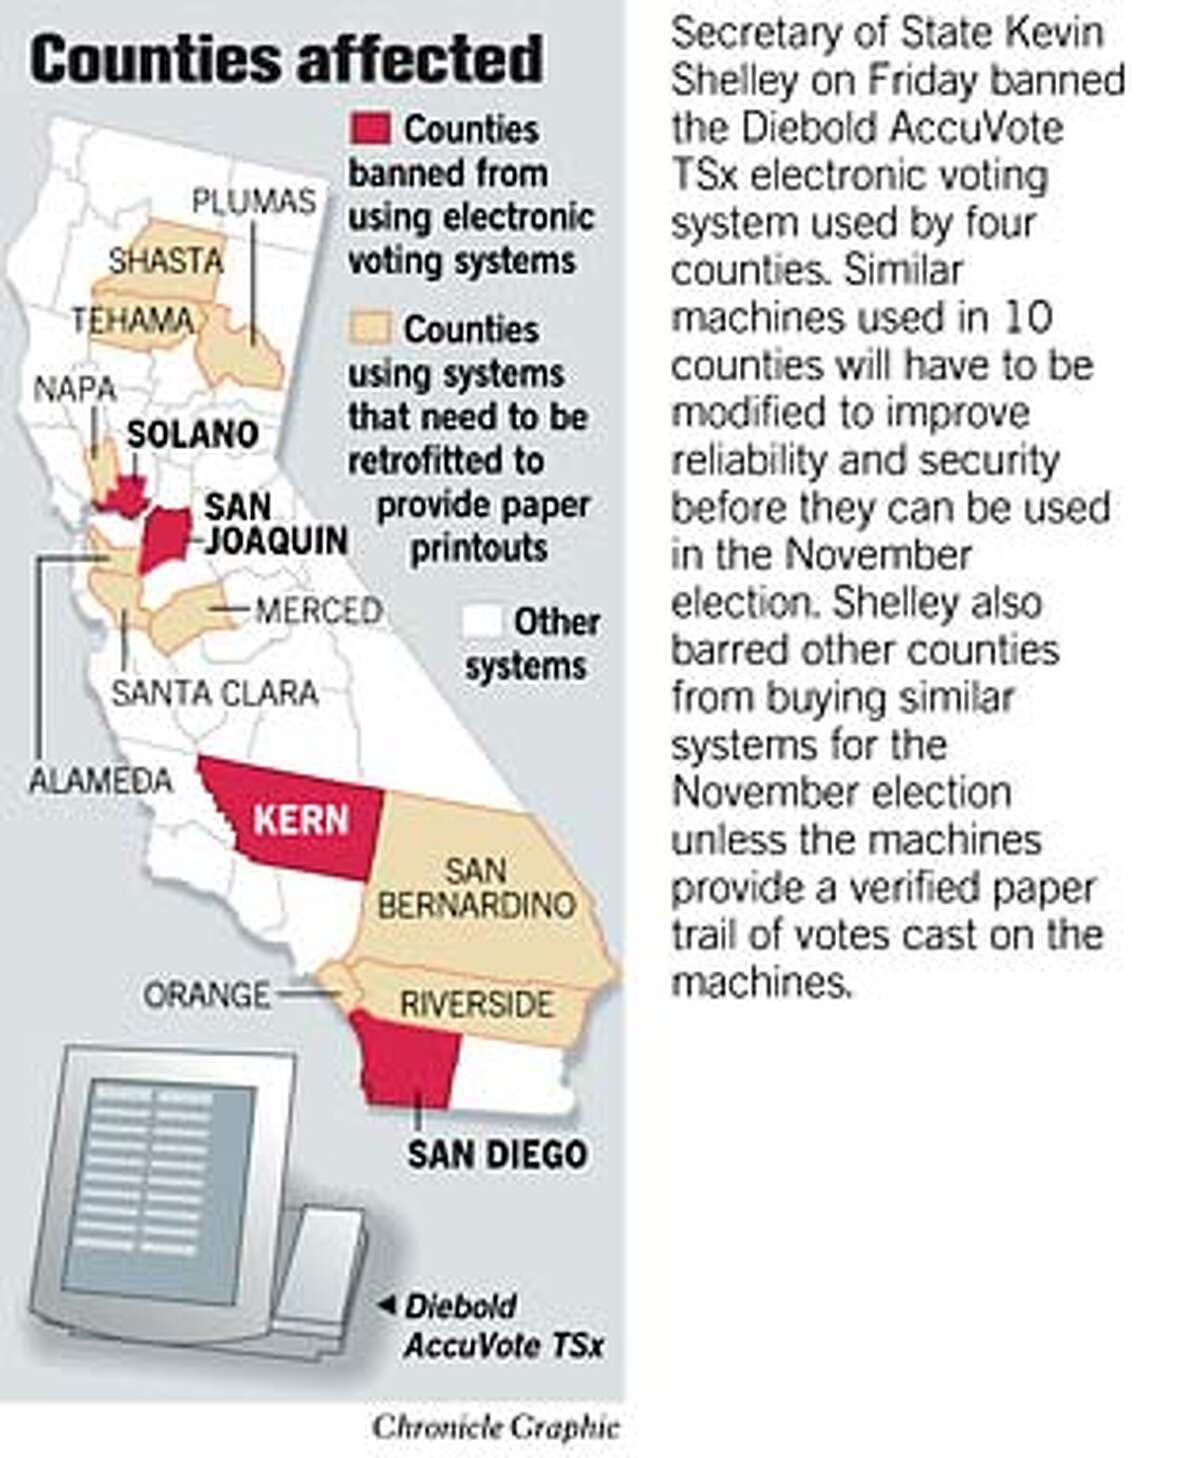 Counties Affected. Chronicle Graphic